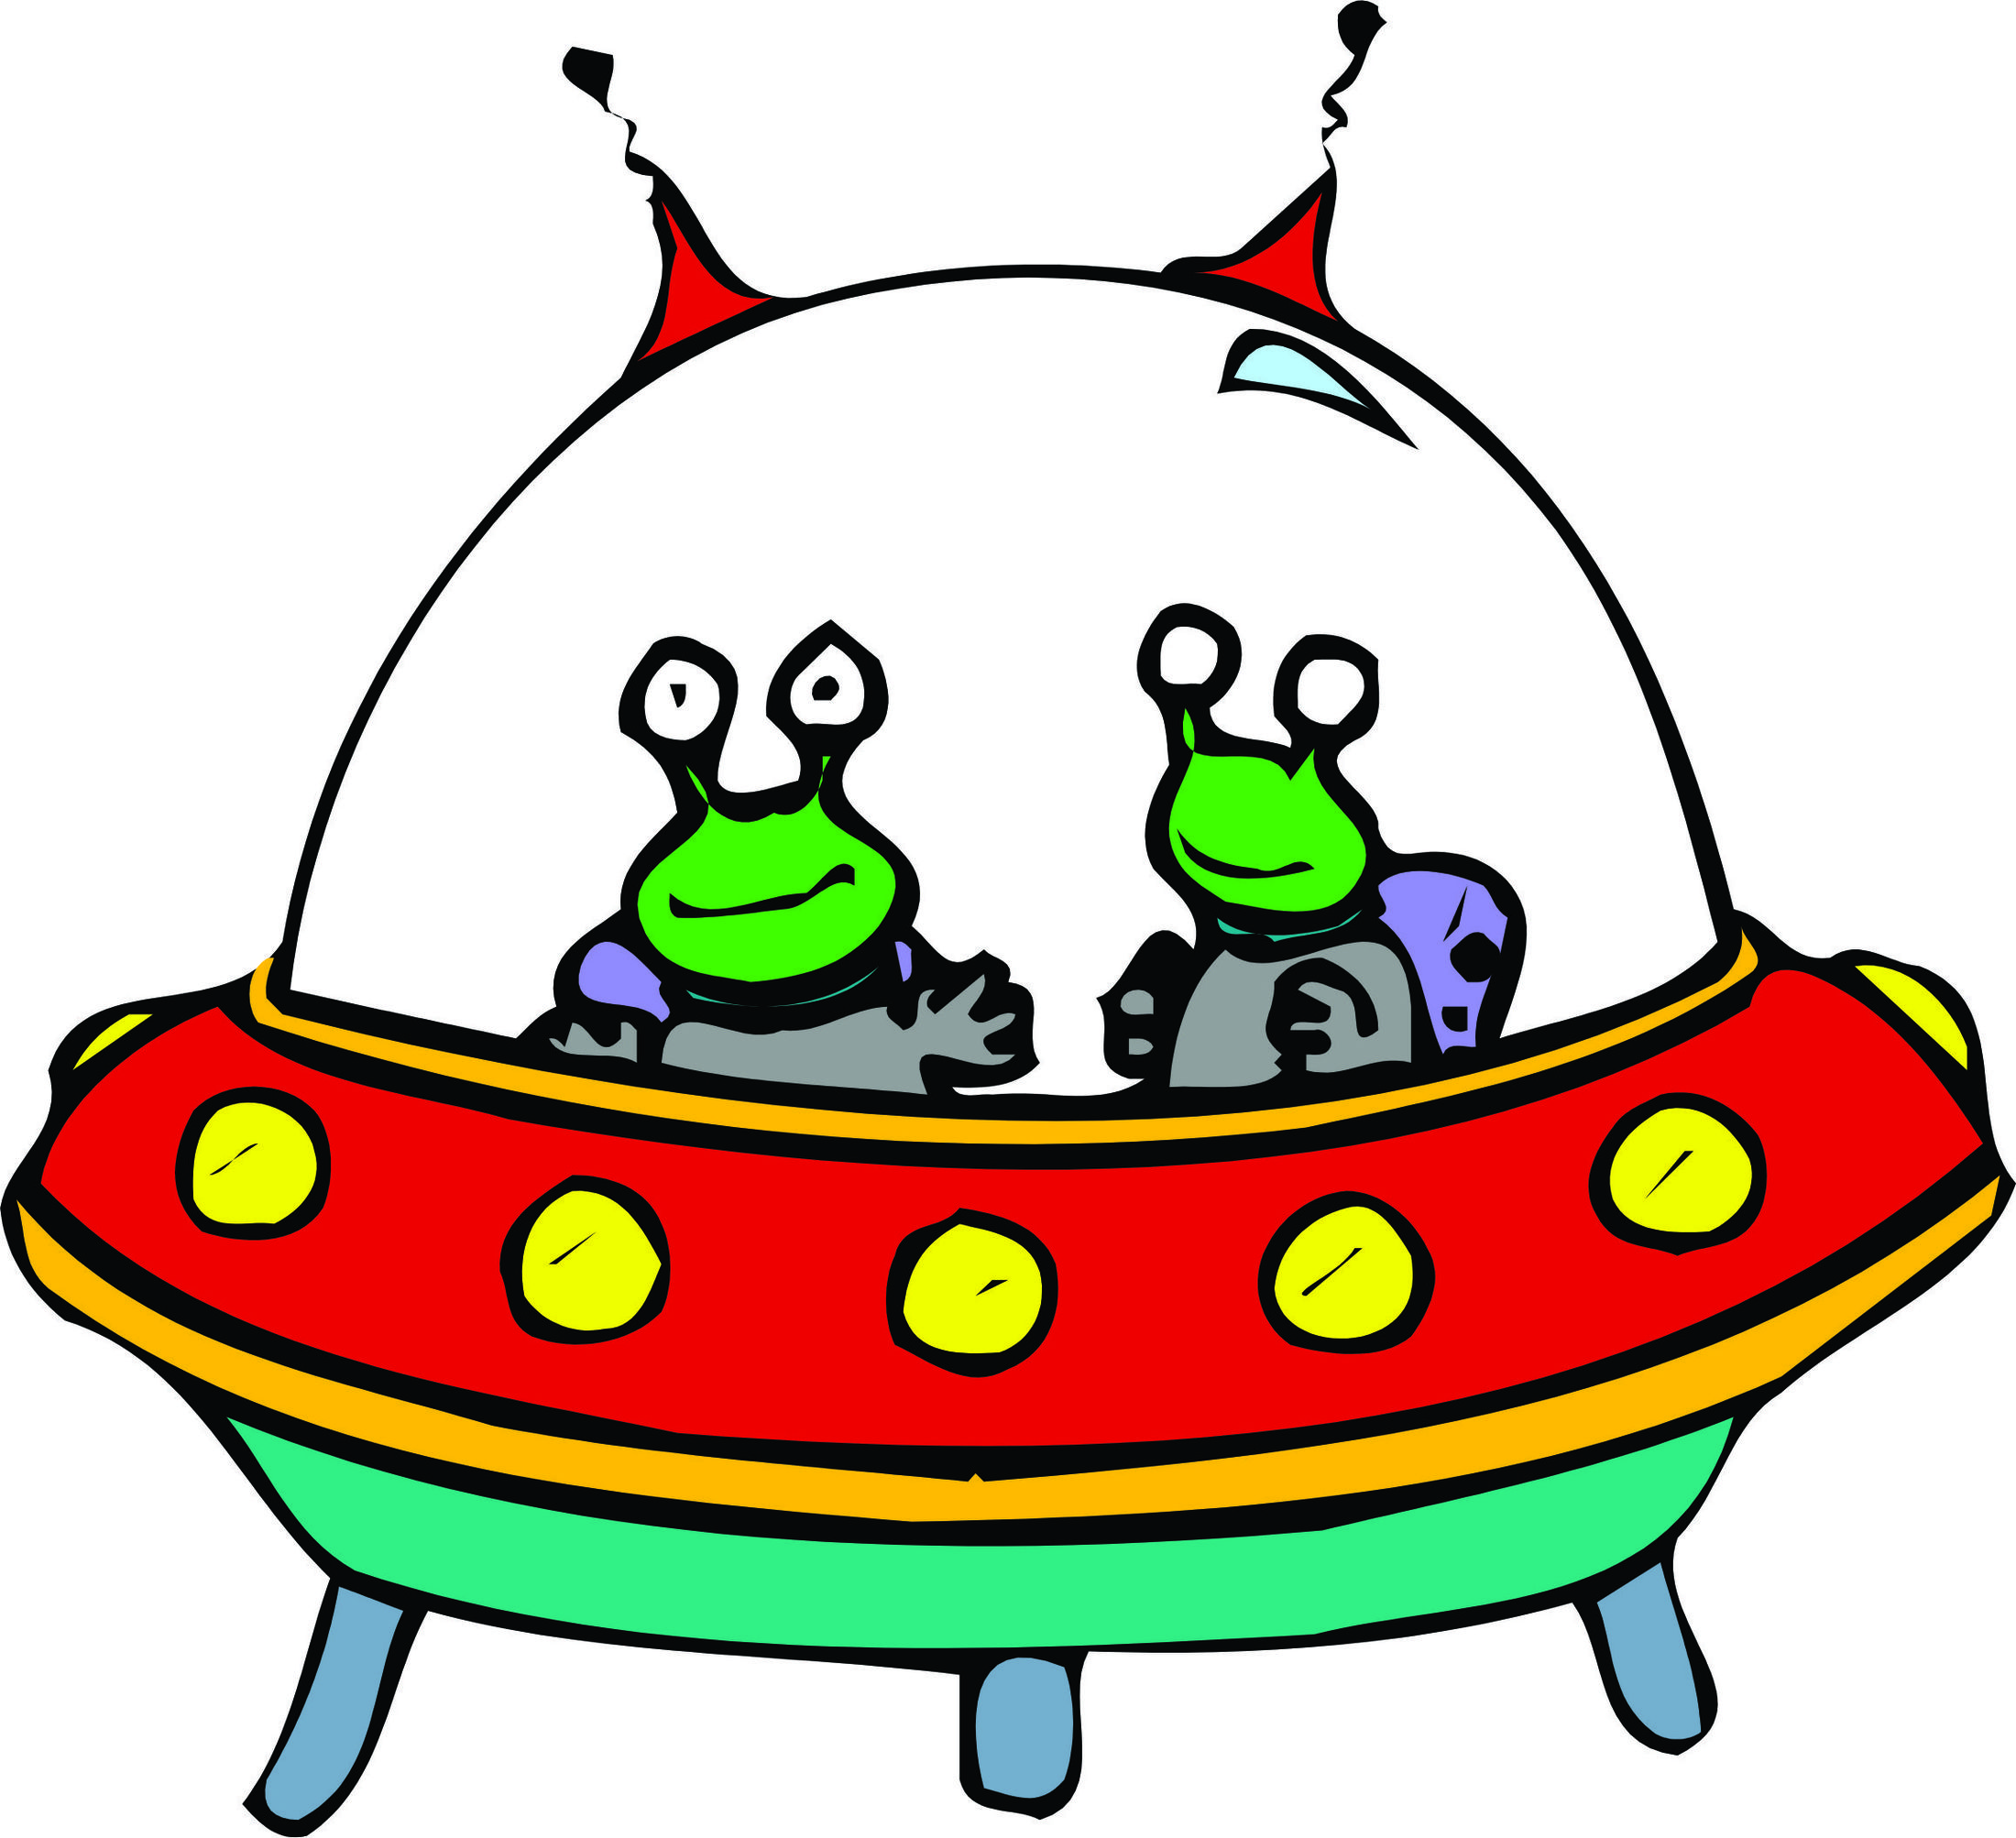 Spaceship clipart #2, Download drawings